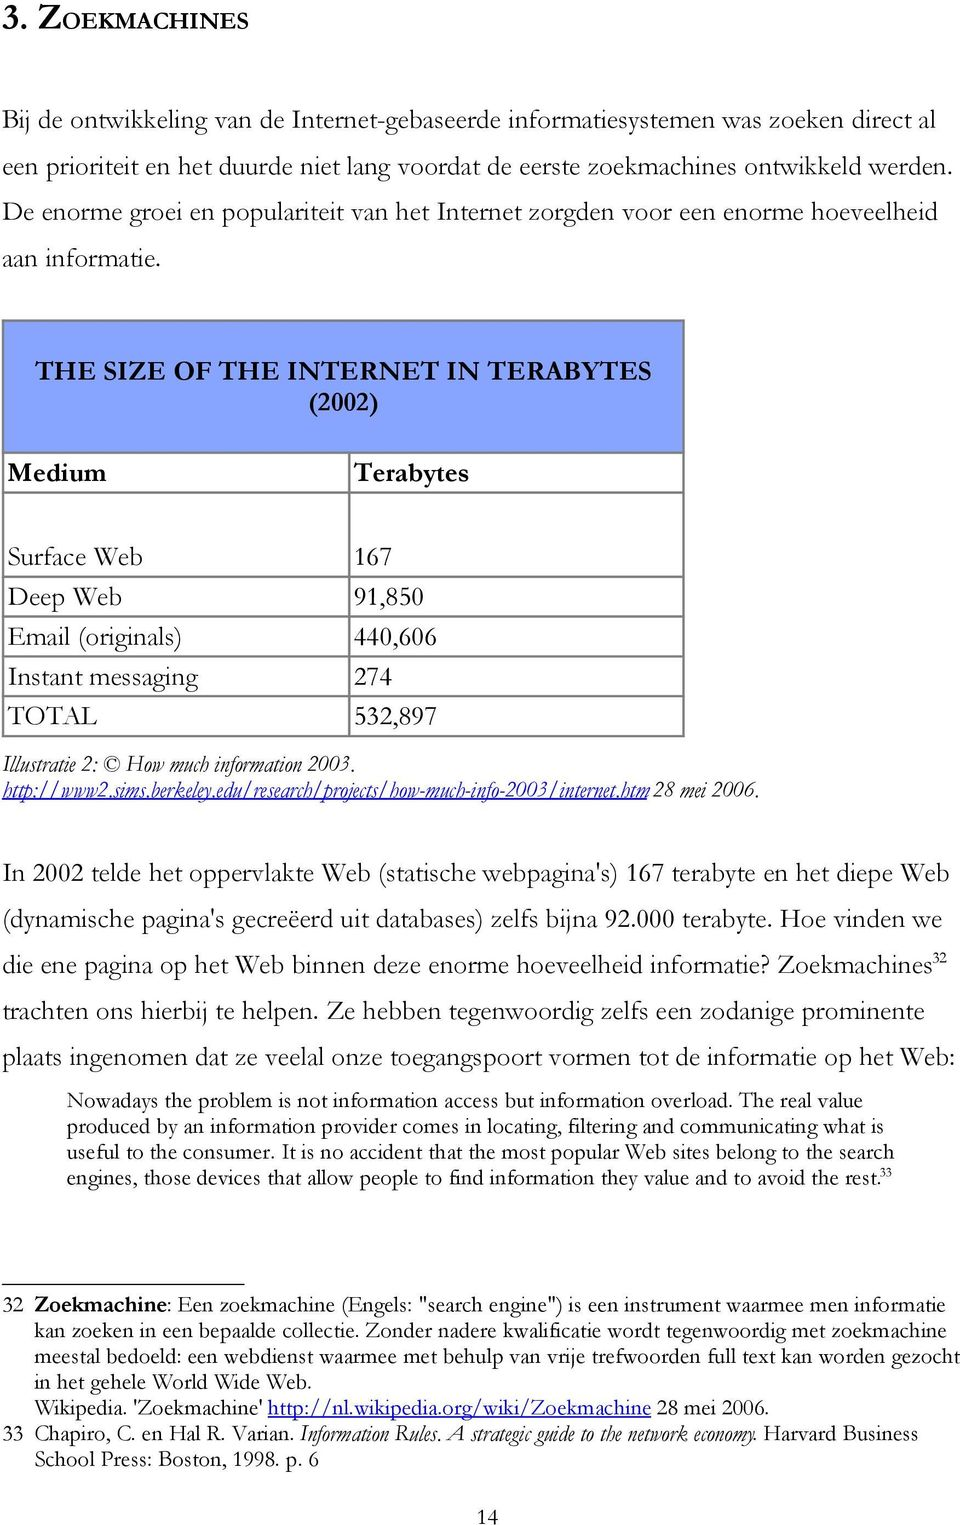 THE SIZE OF THE INTERNET IN TERABYTES (2002) Medium Terabytes Surface Web 167 Deep Web 91,850 Email (originals) 440,606 Instant messaging 274 TOTAL 532,897 Illustratie 2: How much information 2003.